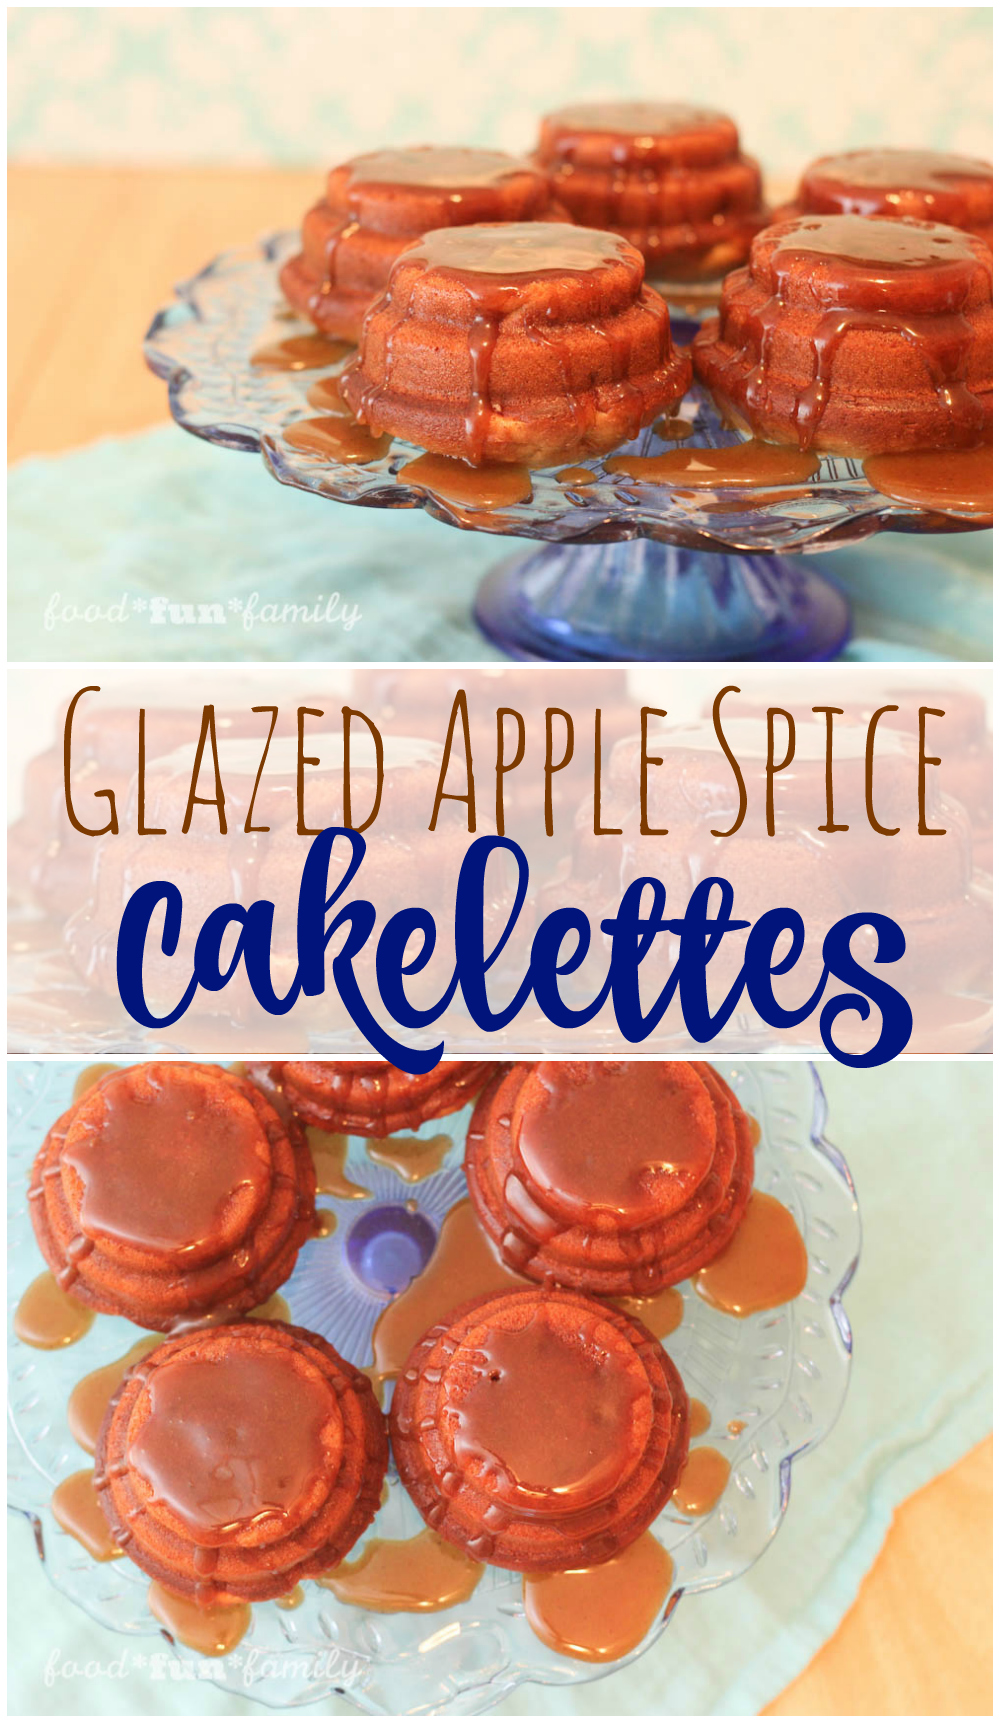 Glazed Apple Spice Cakelettes Recipe from Food Fun Family